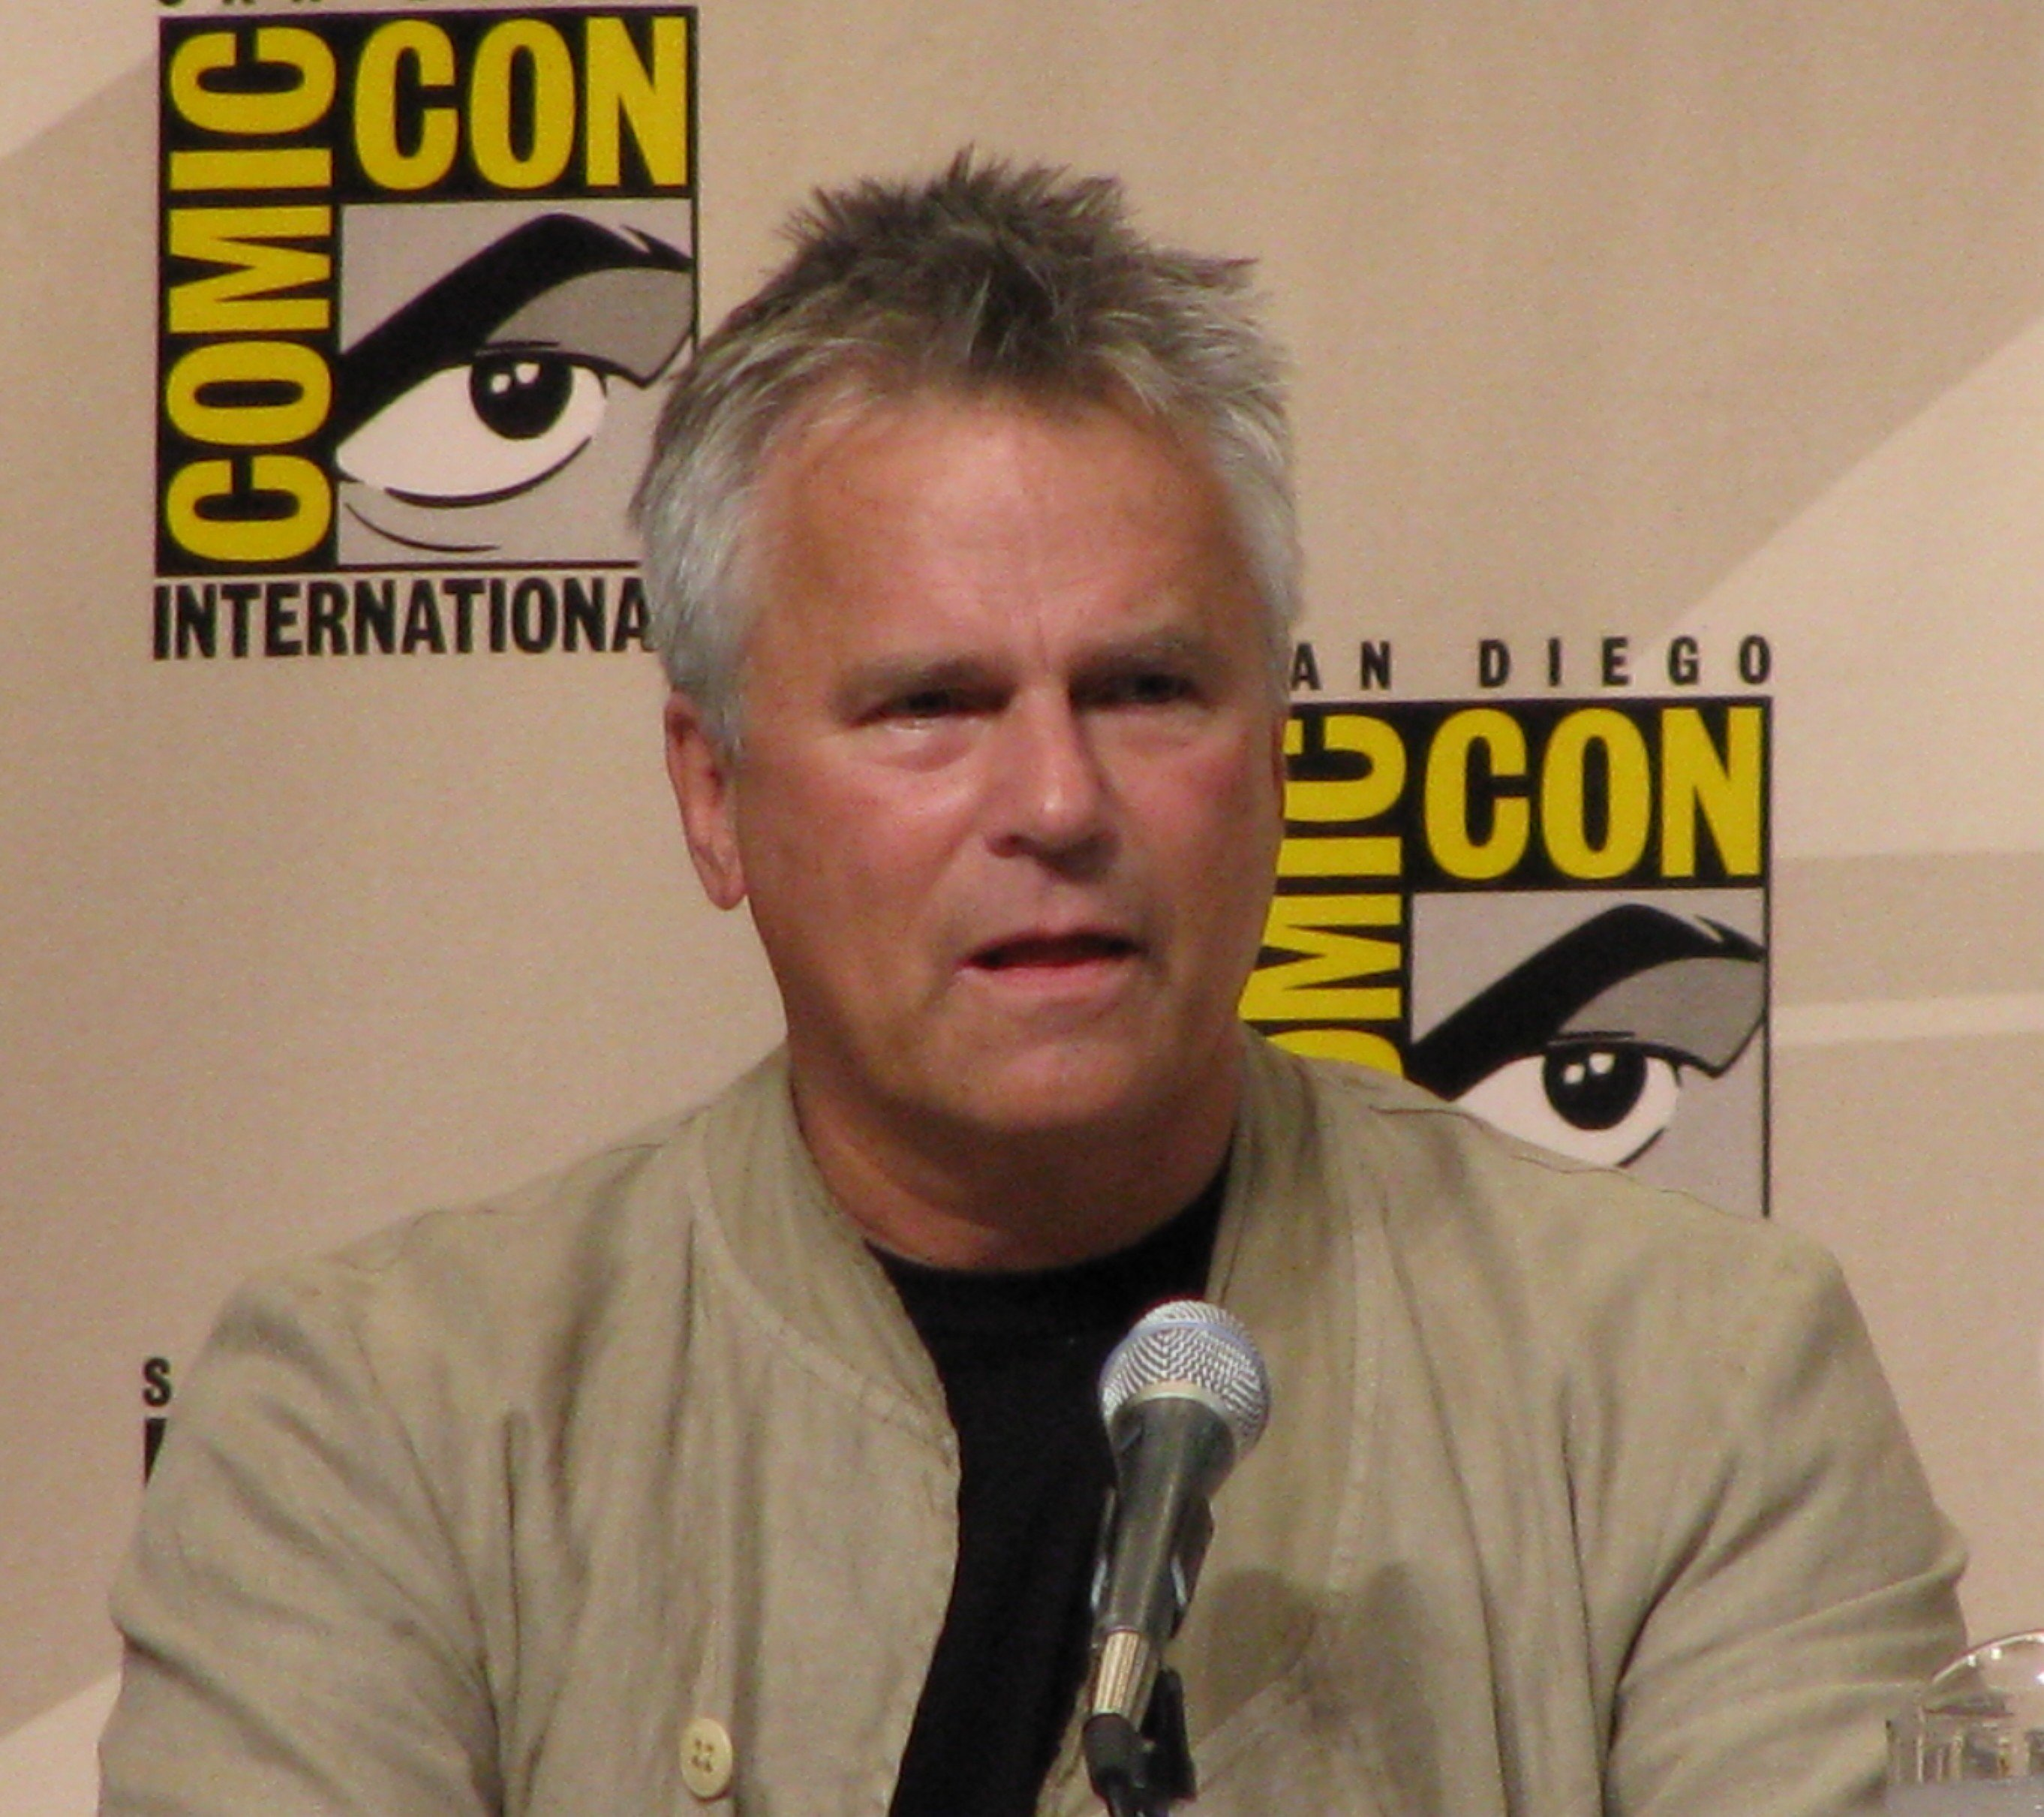 Richard Dean Anderson at Comic Con 2008 | Source: Wikimedia Commons